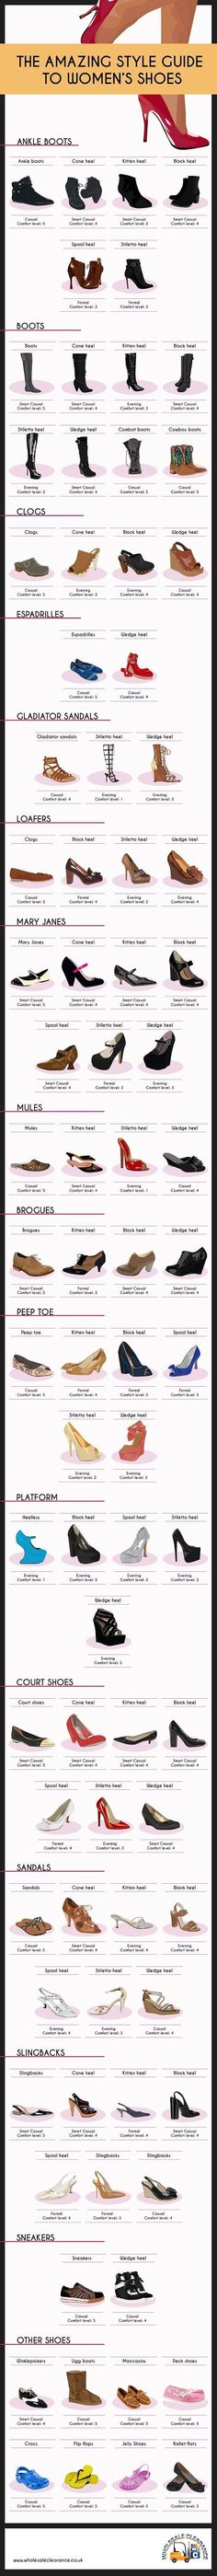 The Amazing Style Guide to Women's Shoes #infographic ~ Visualistan